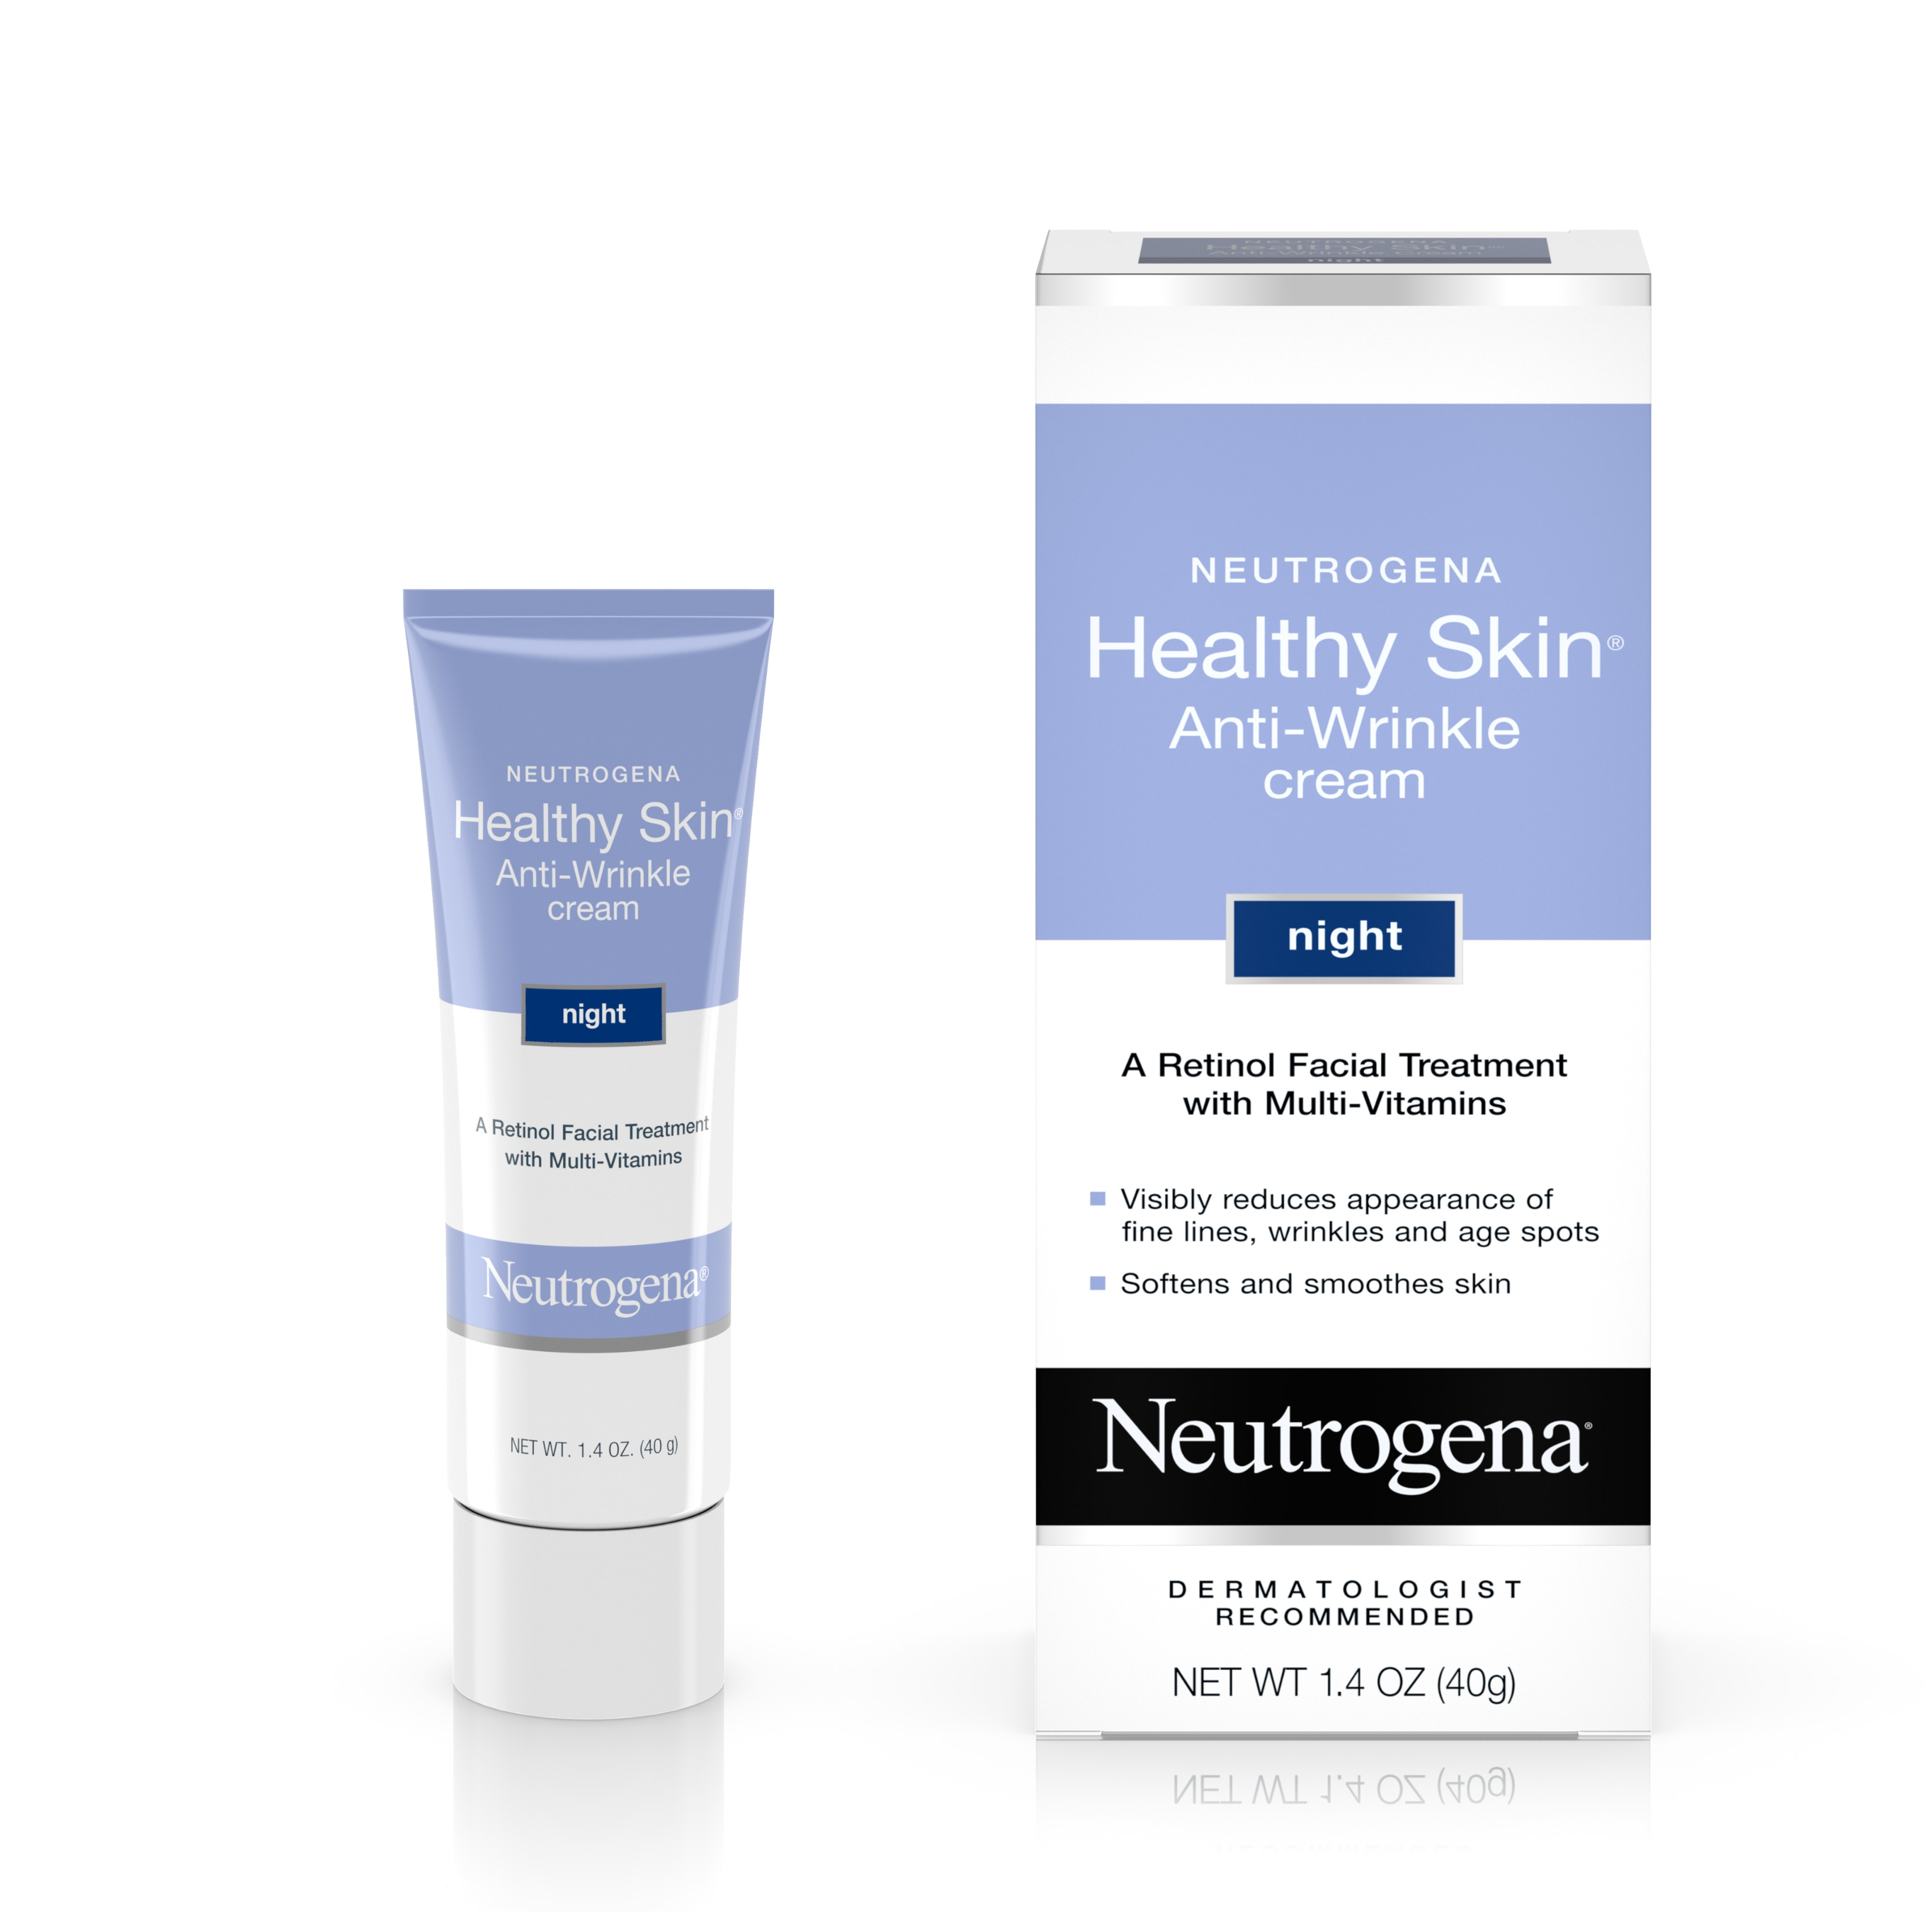 Neutrogena Healthy Skin Anti-Wrinkle Retinol Night Cream, 1.4 oz